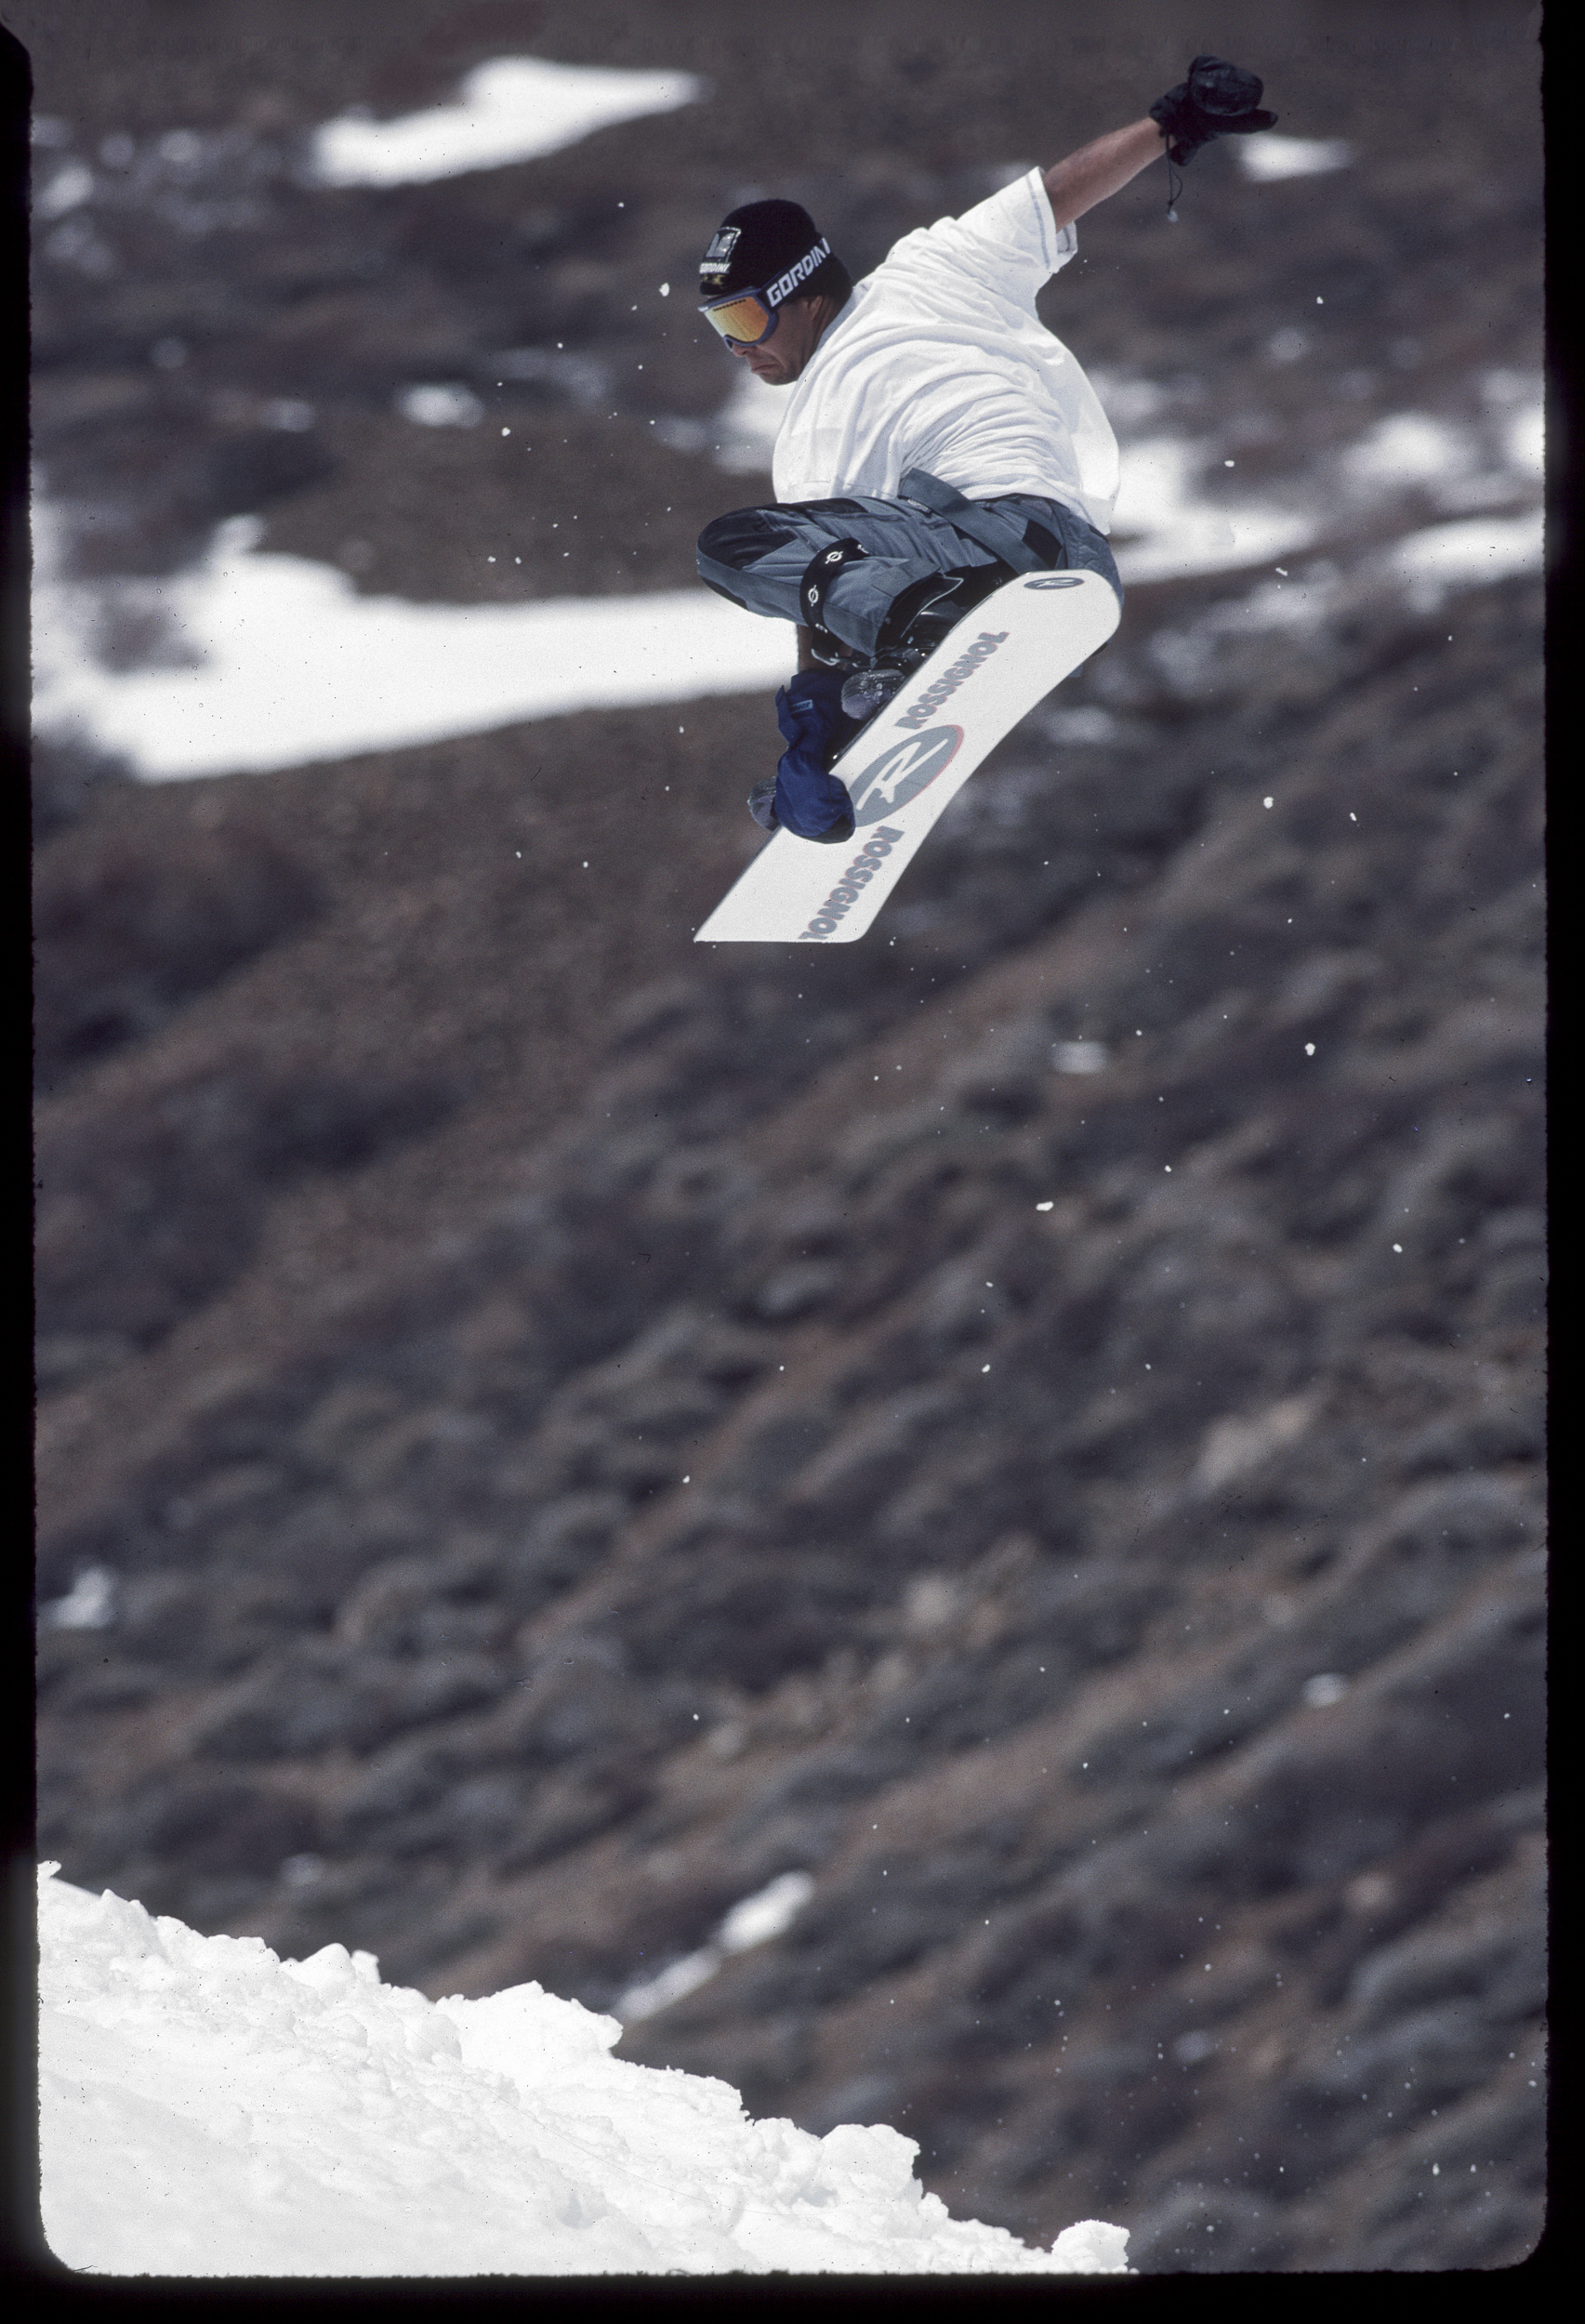 Elements photo gallery snowboarder